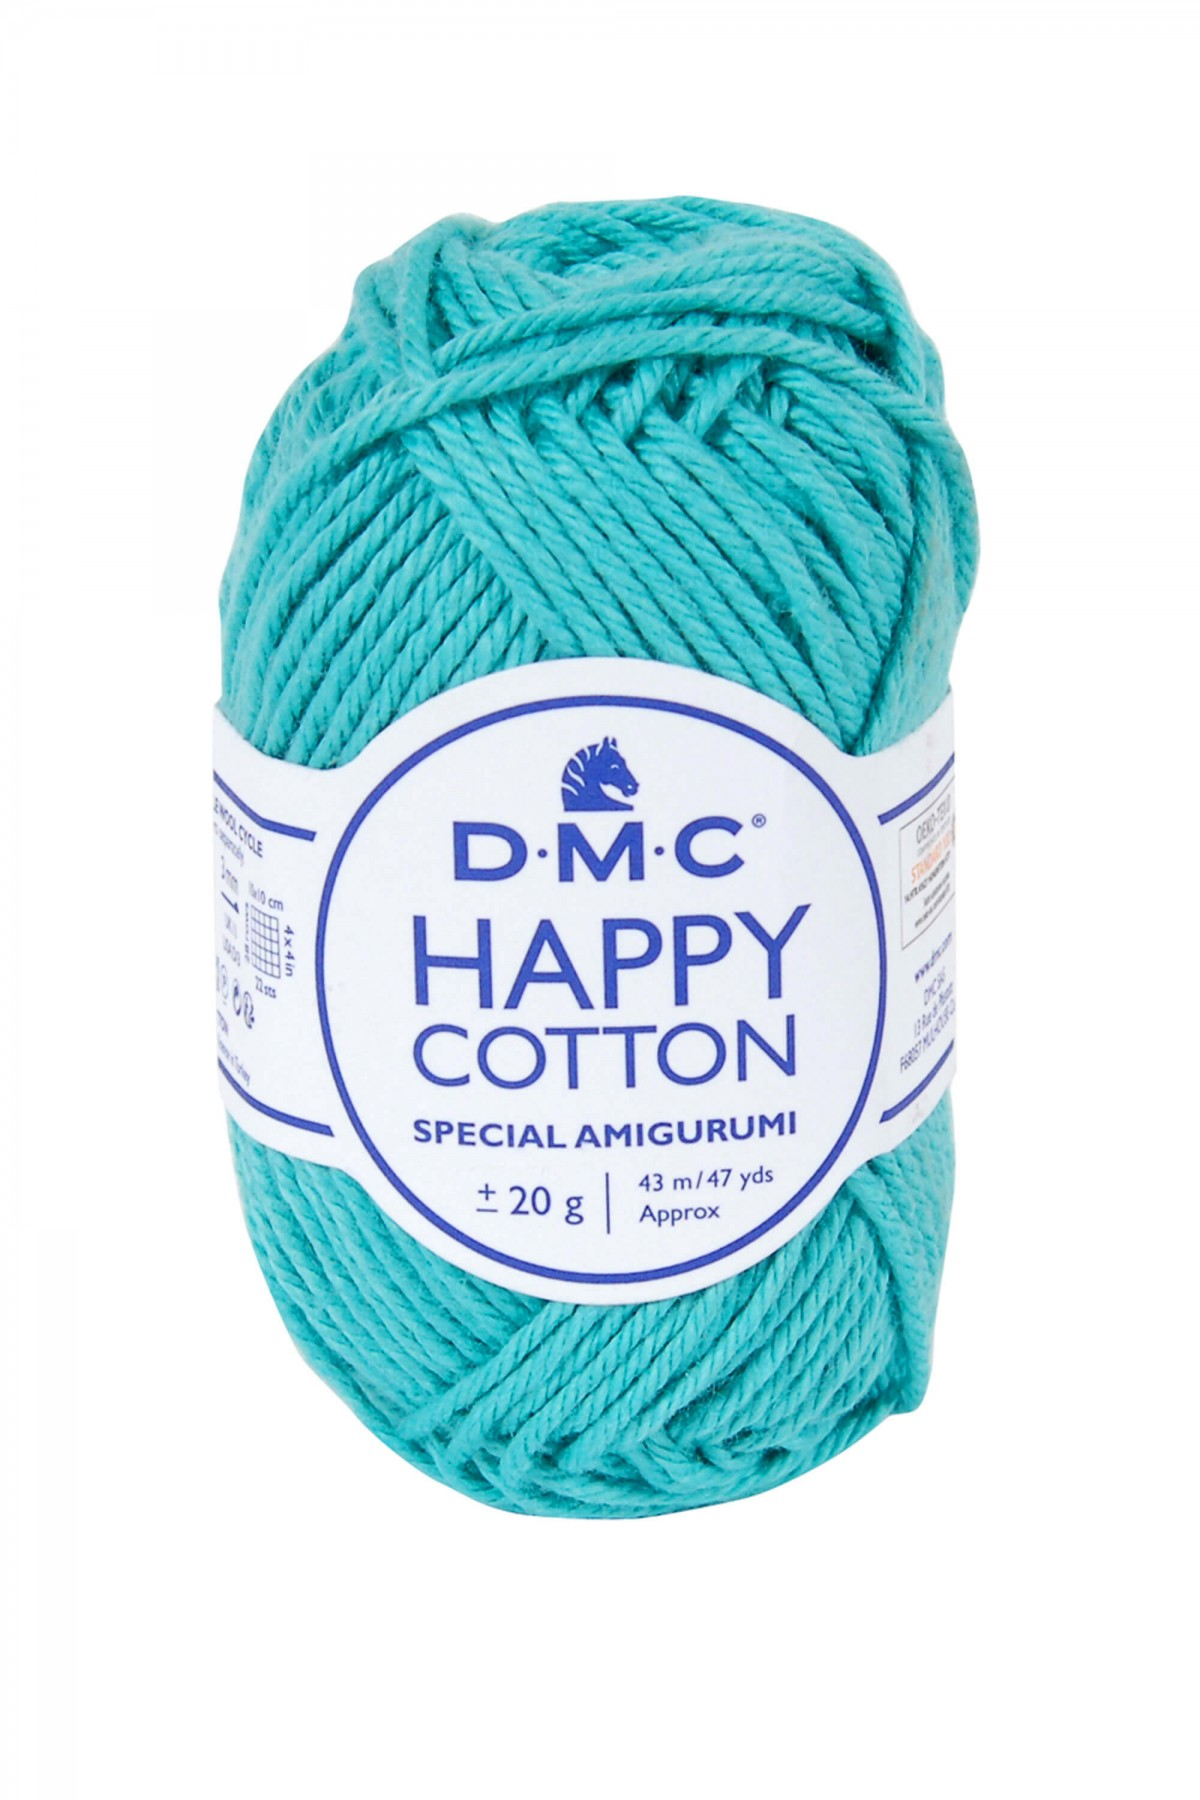 Fil pour amigurumis en coton DMC Happy Cotton 784